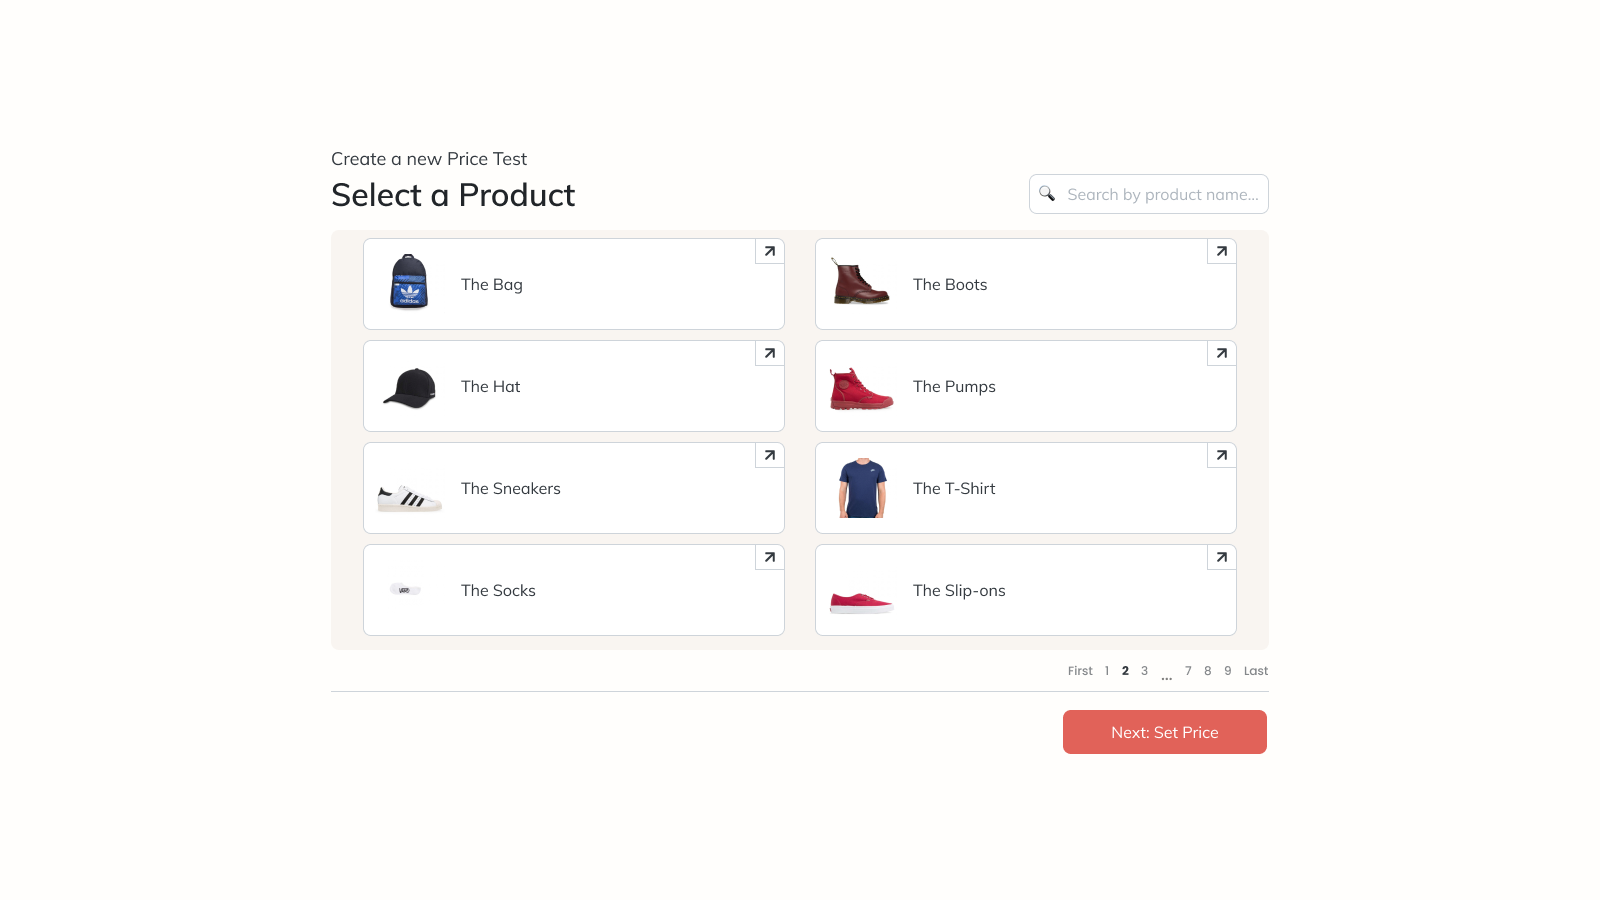 Pick a product